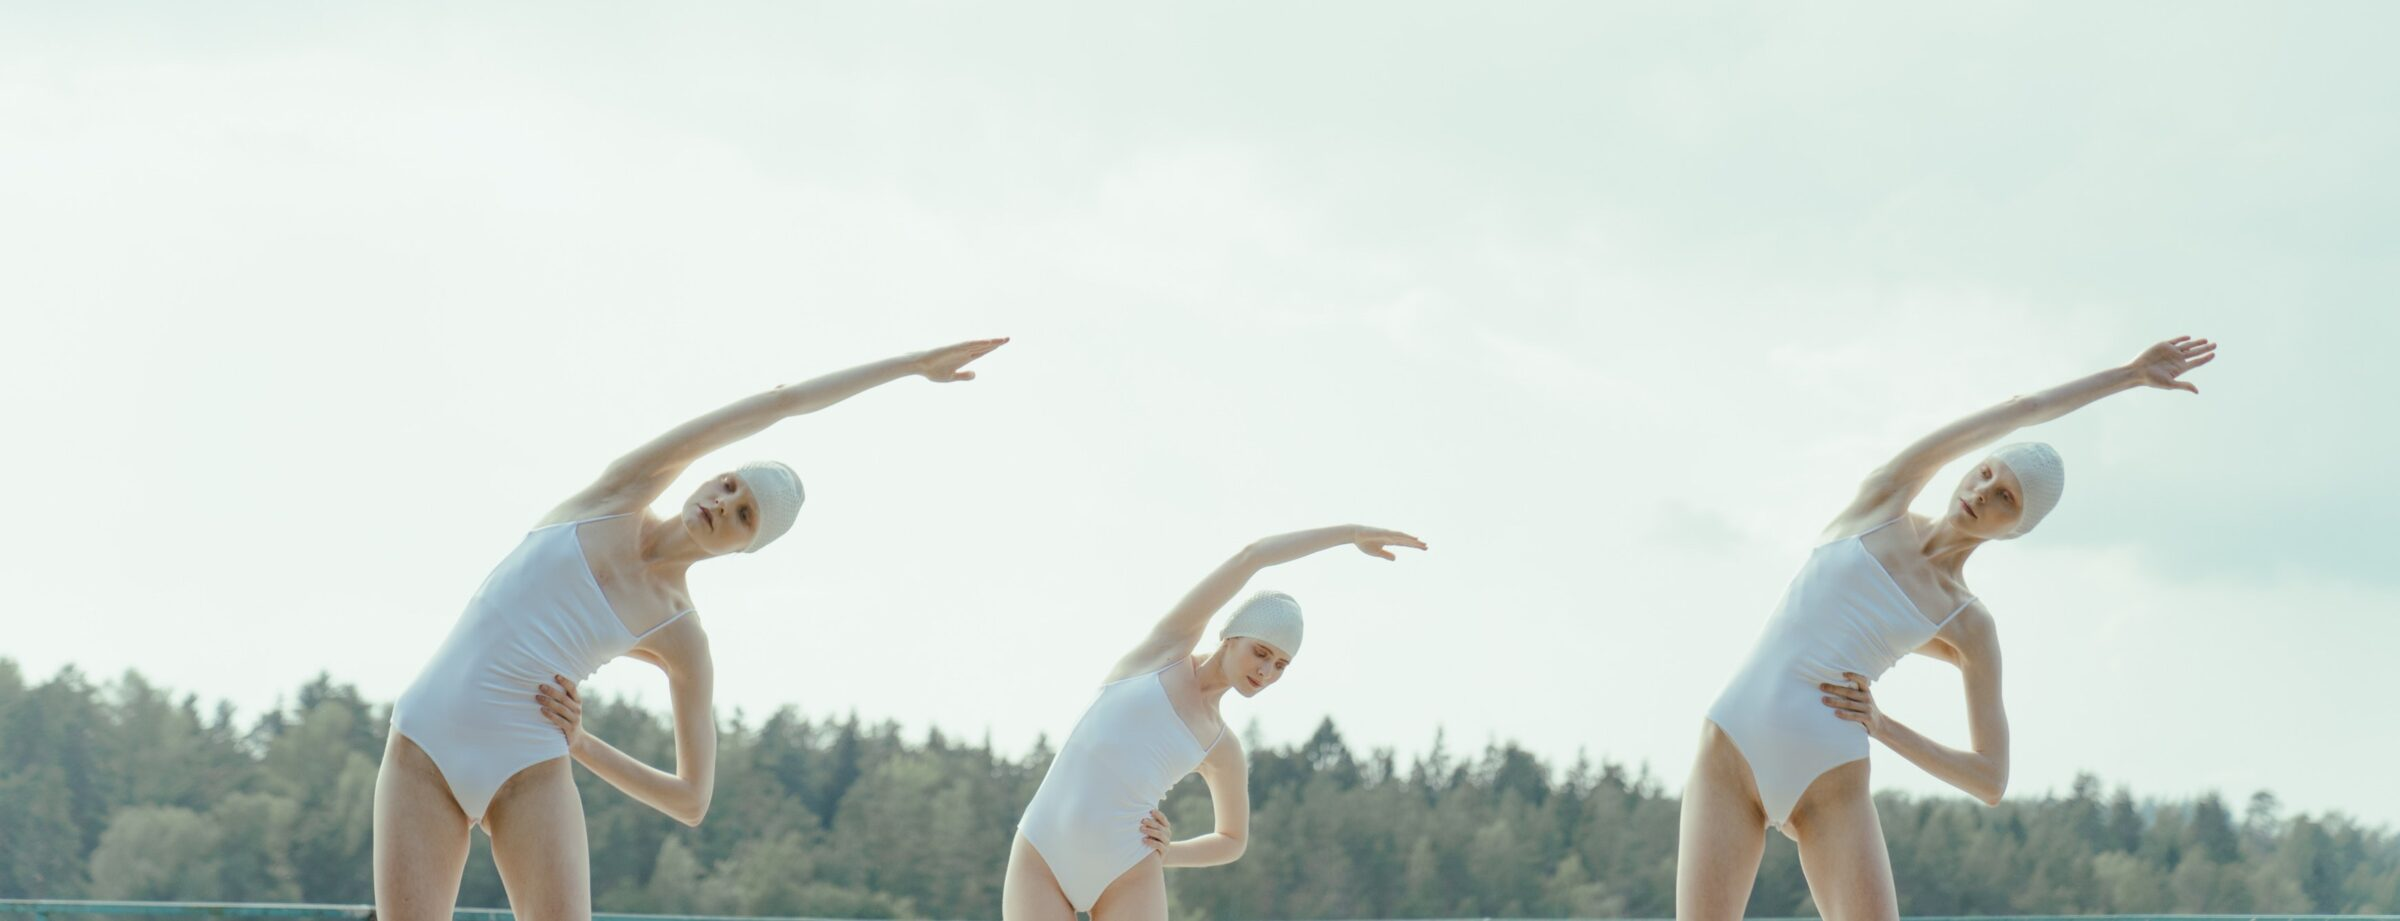 women wearing white swimsuits on a beach and stretching